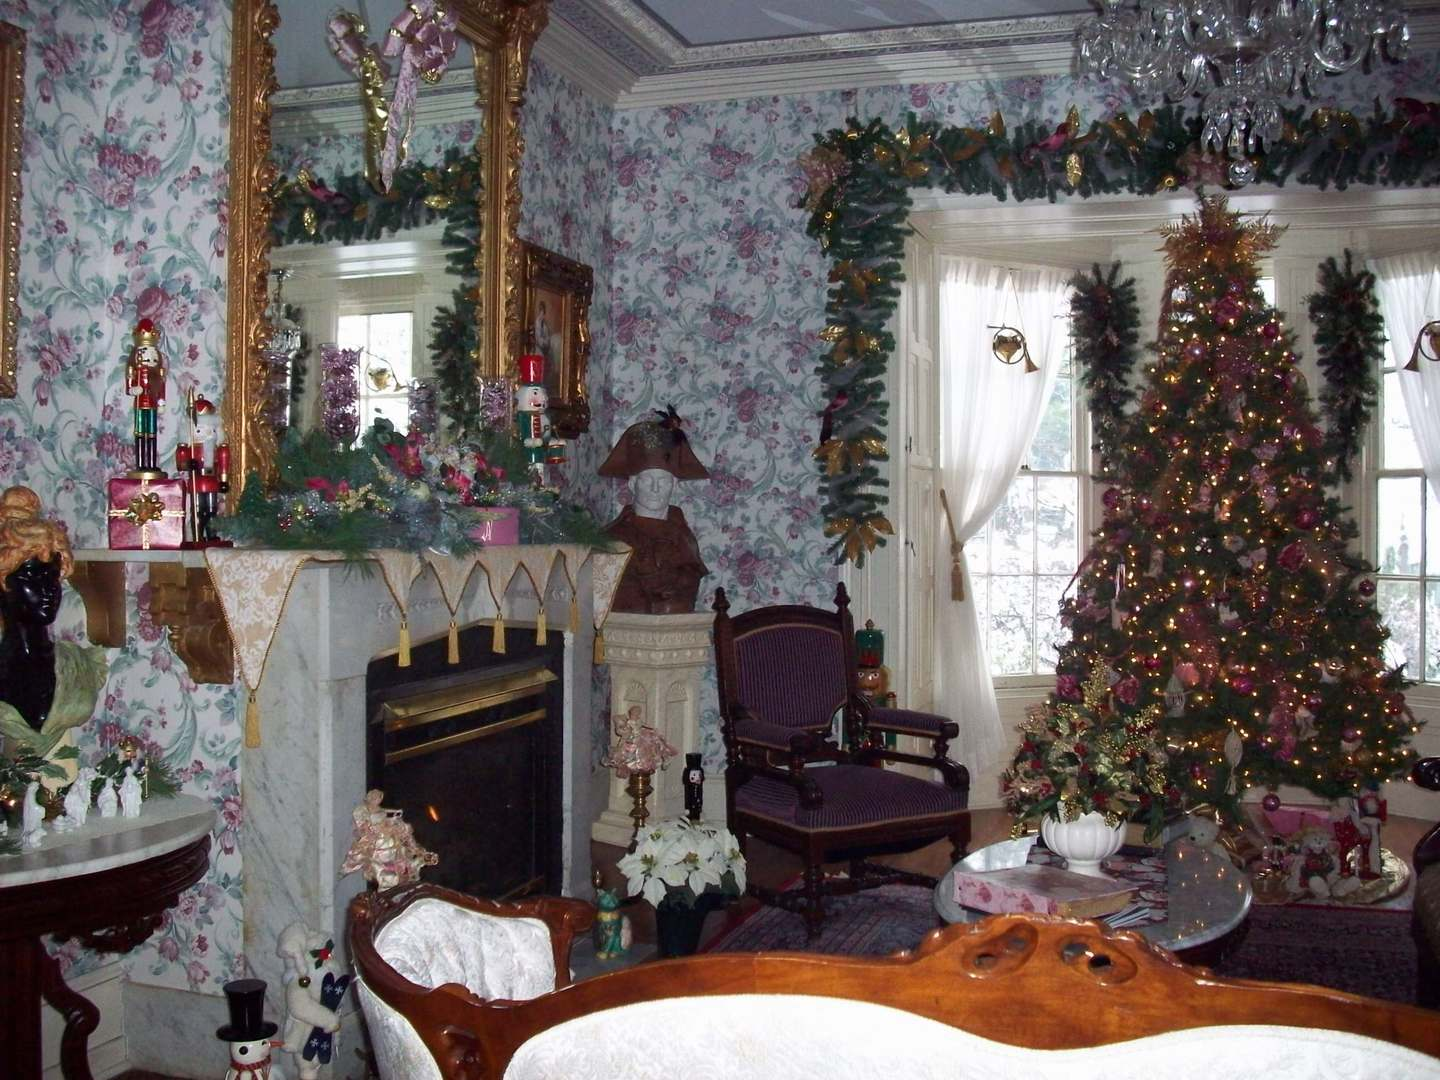 A living room with a christmas tree at Doctor's Inn.